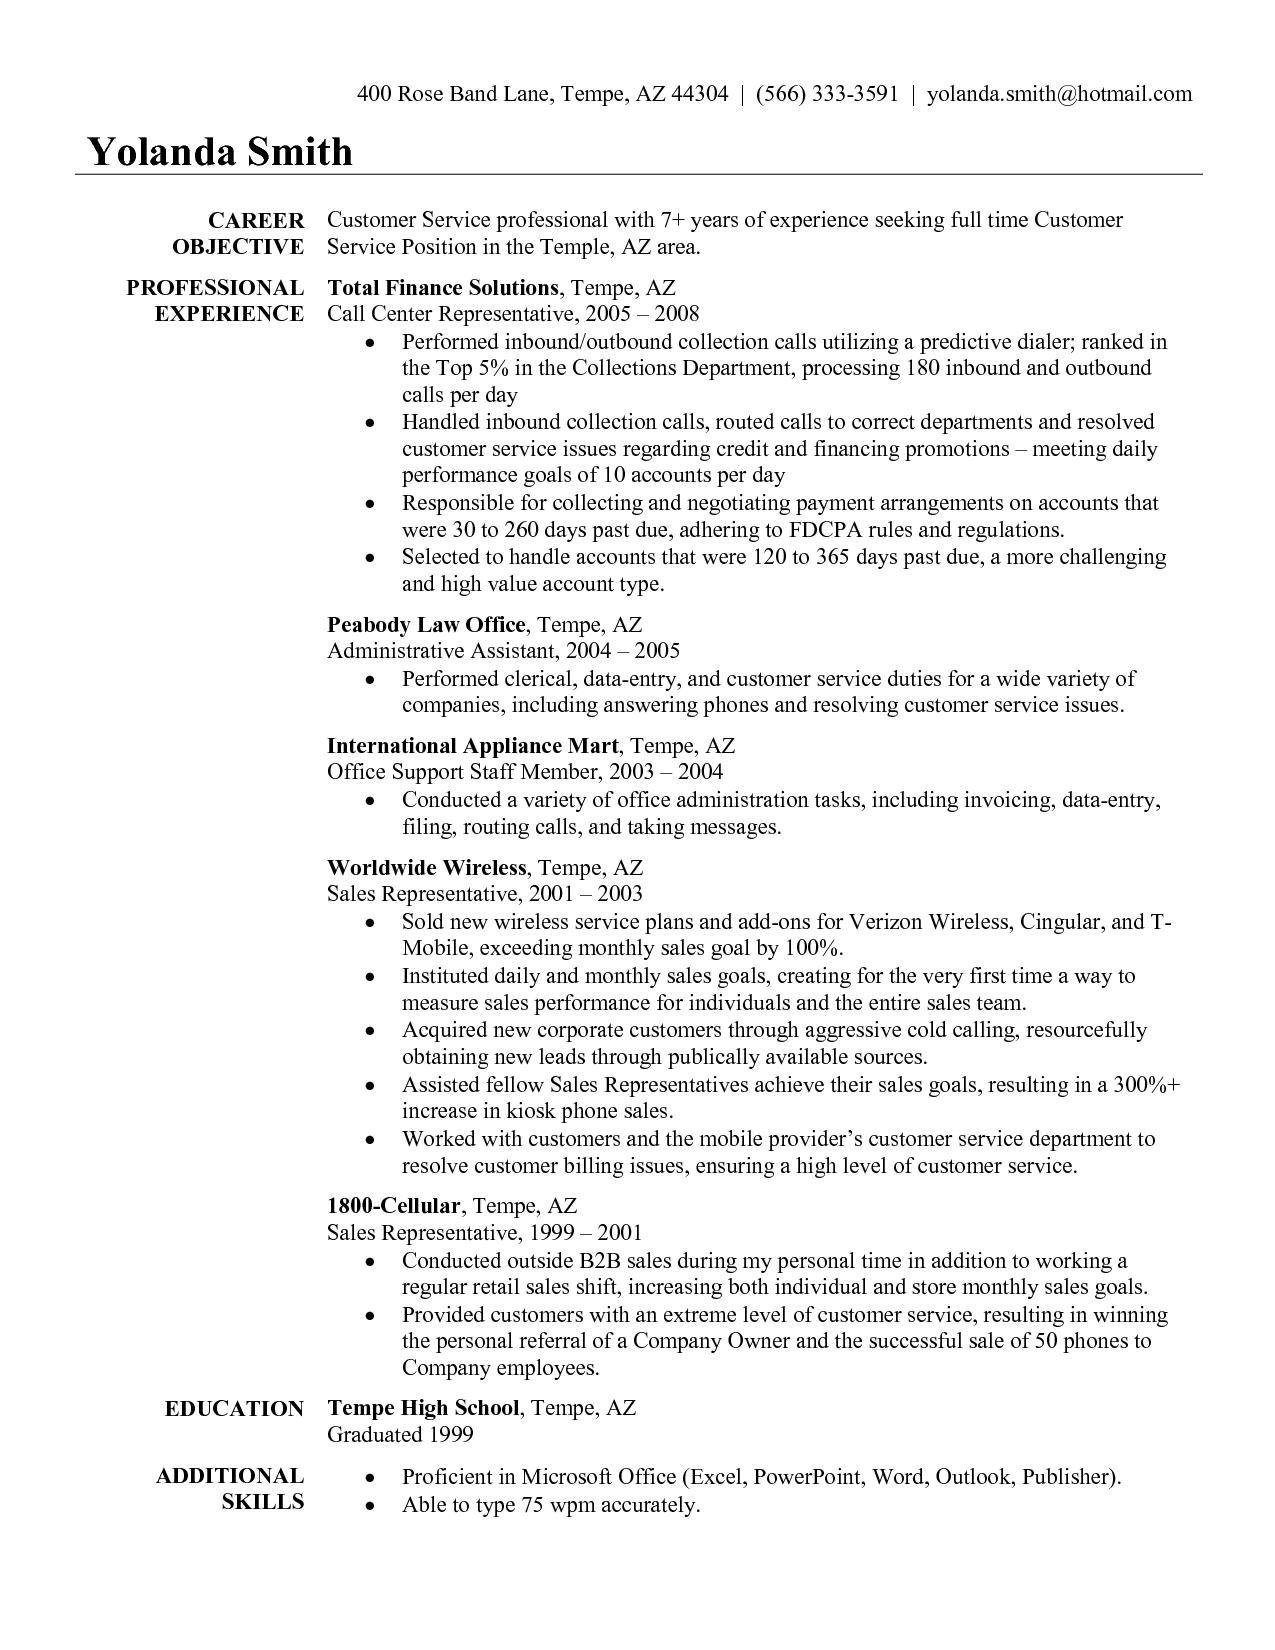 Customer Service Resume Objective Examples Traffic Customer Resume Examples Customer Service Resume